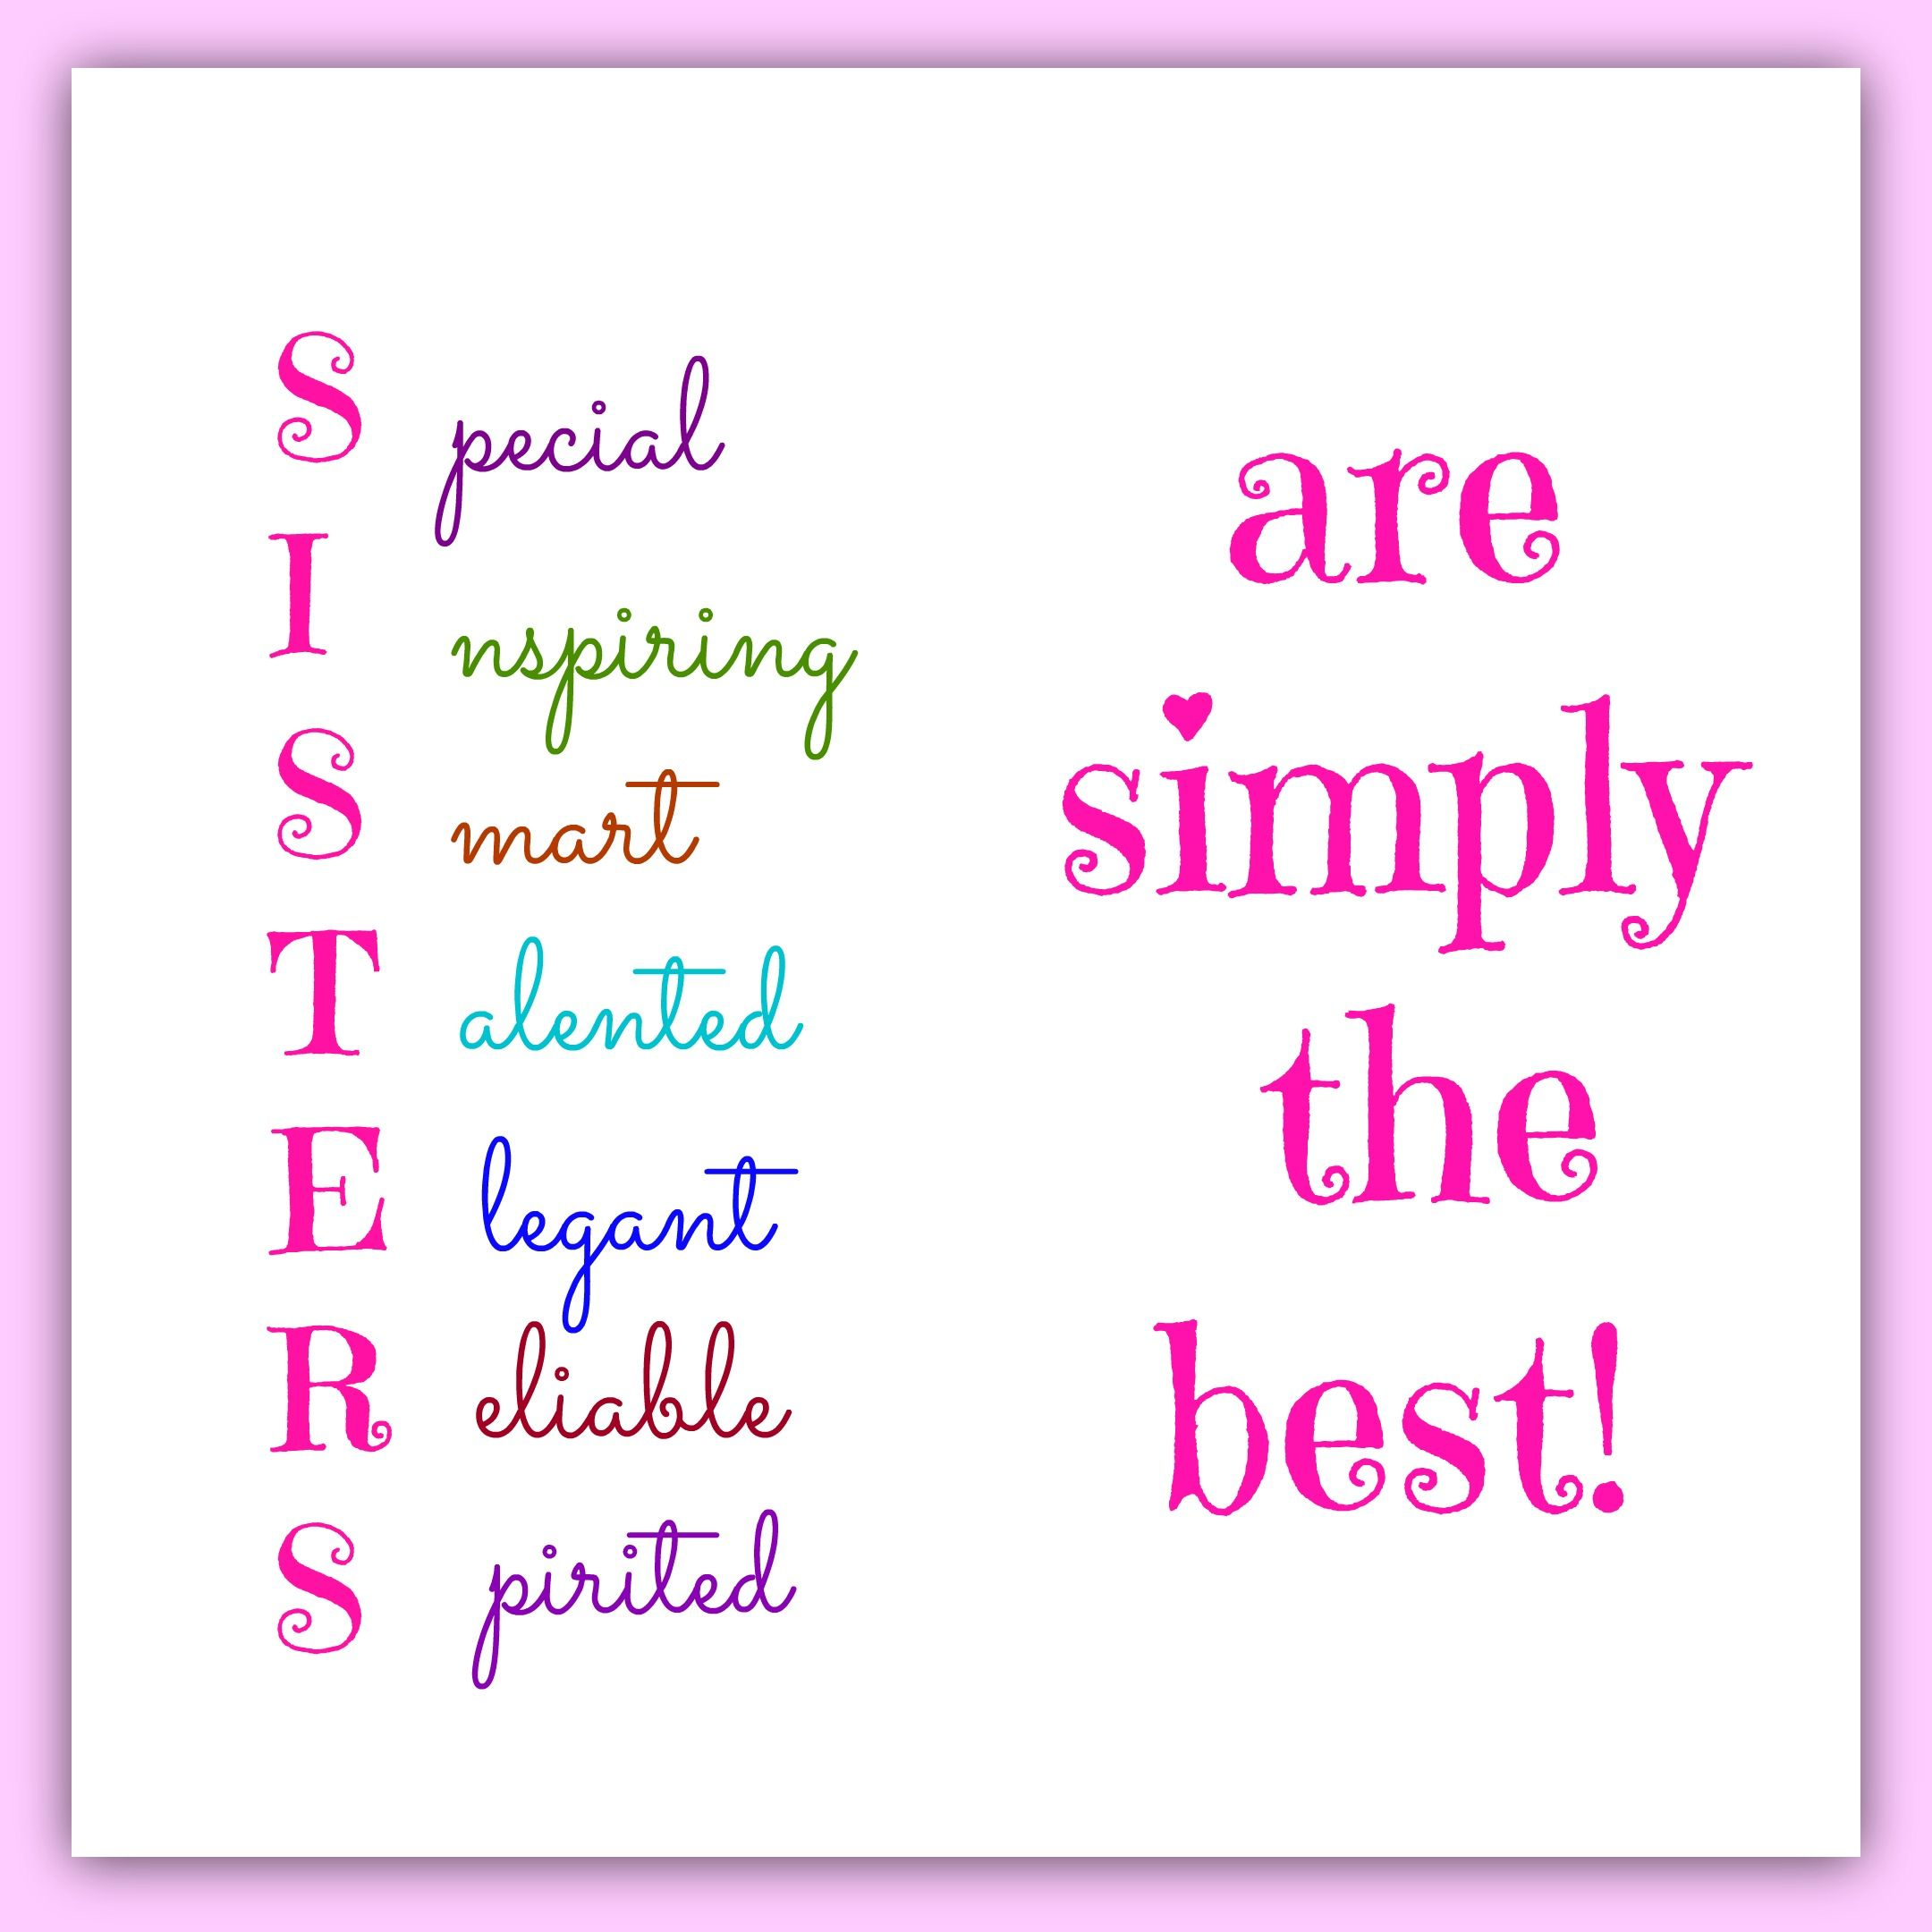 Images Of Sisters With Quotes: Sisters Are Simply The Best!